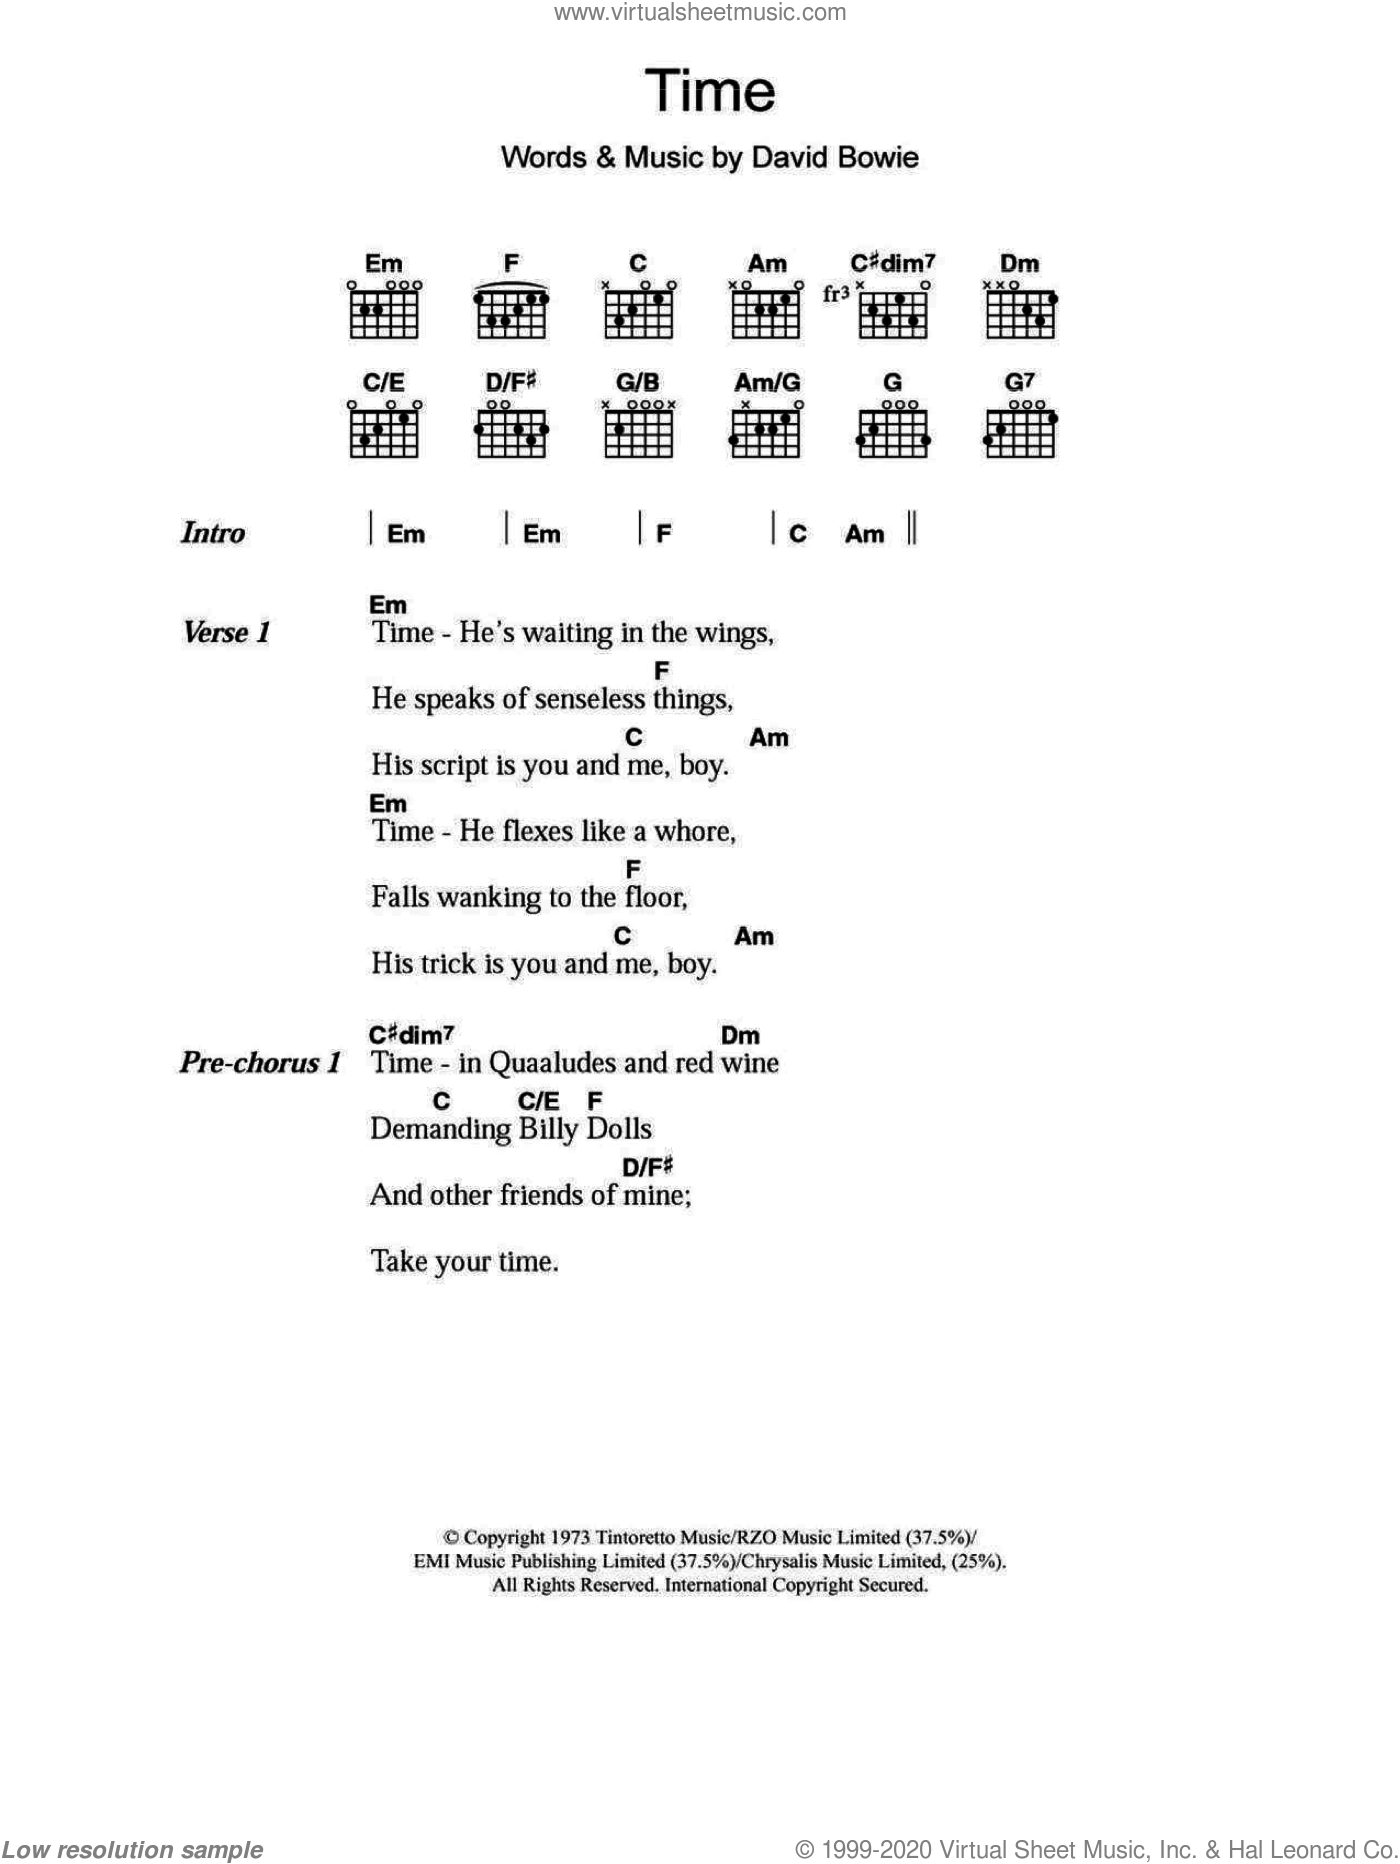 Bowie - Time sheet music for guitar (chords) [PDF]